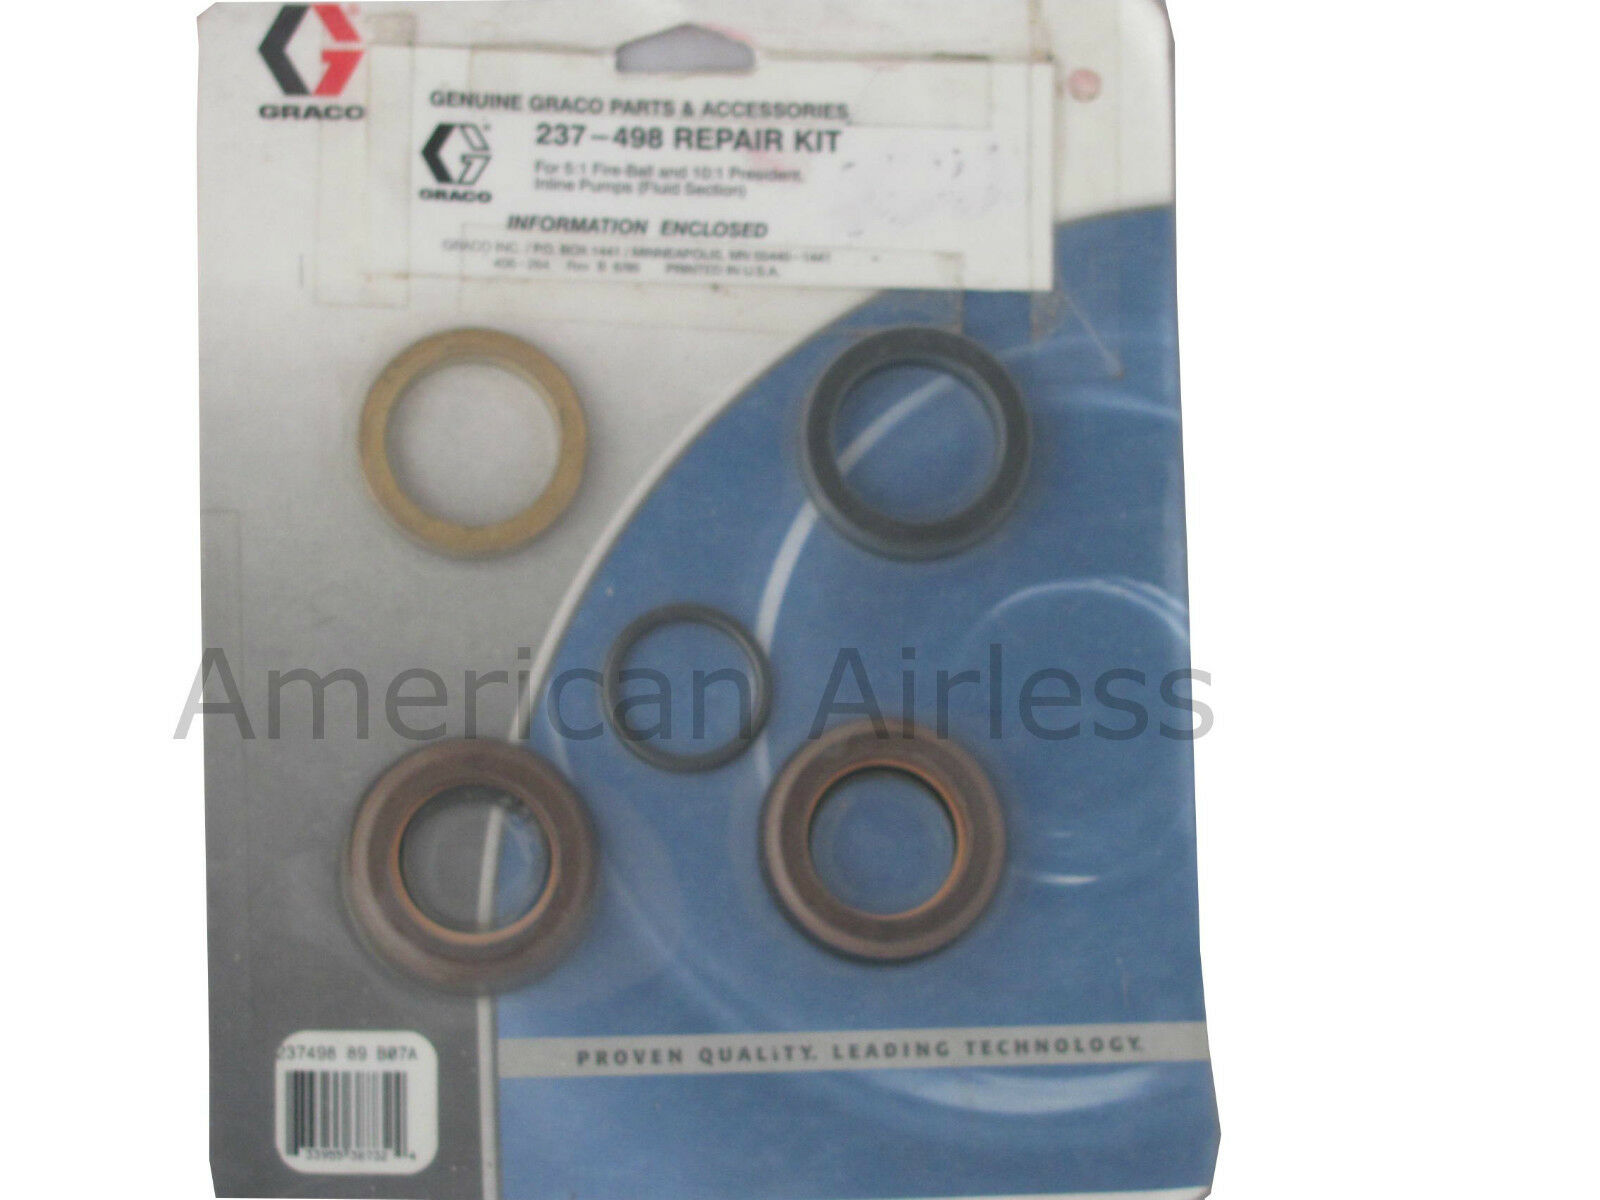 Graco Repair Kit 237498 237-498